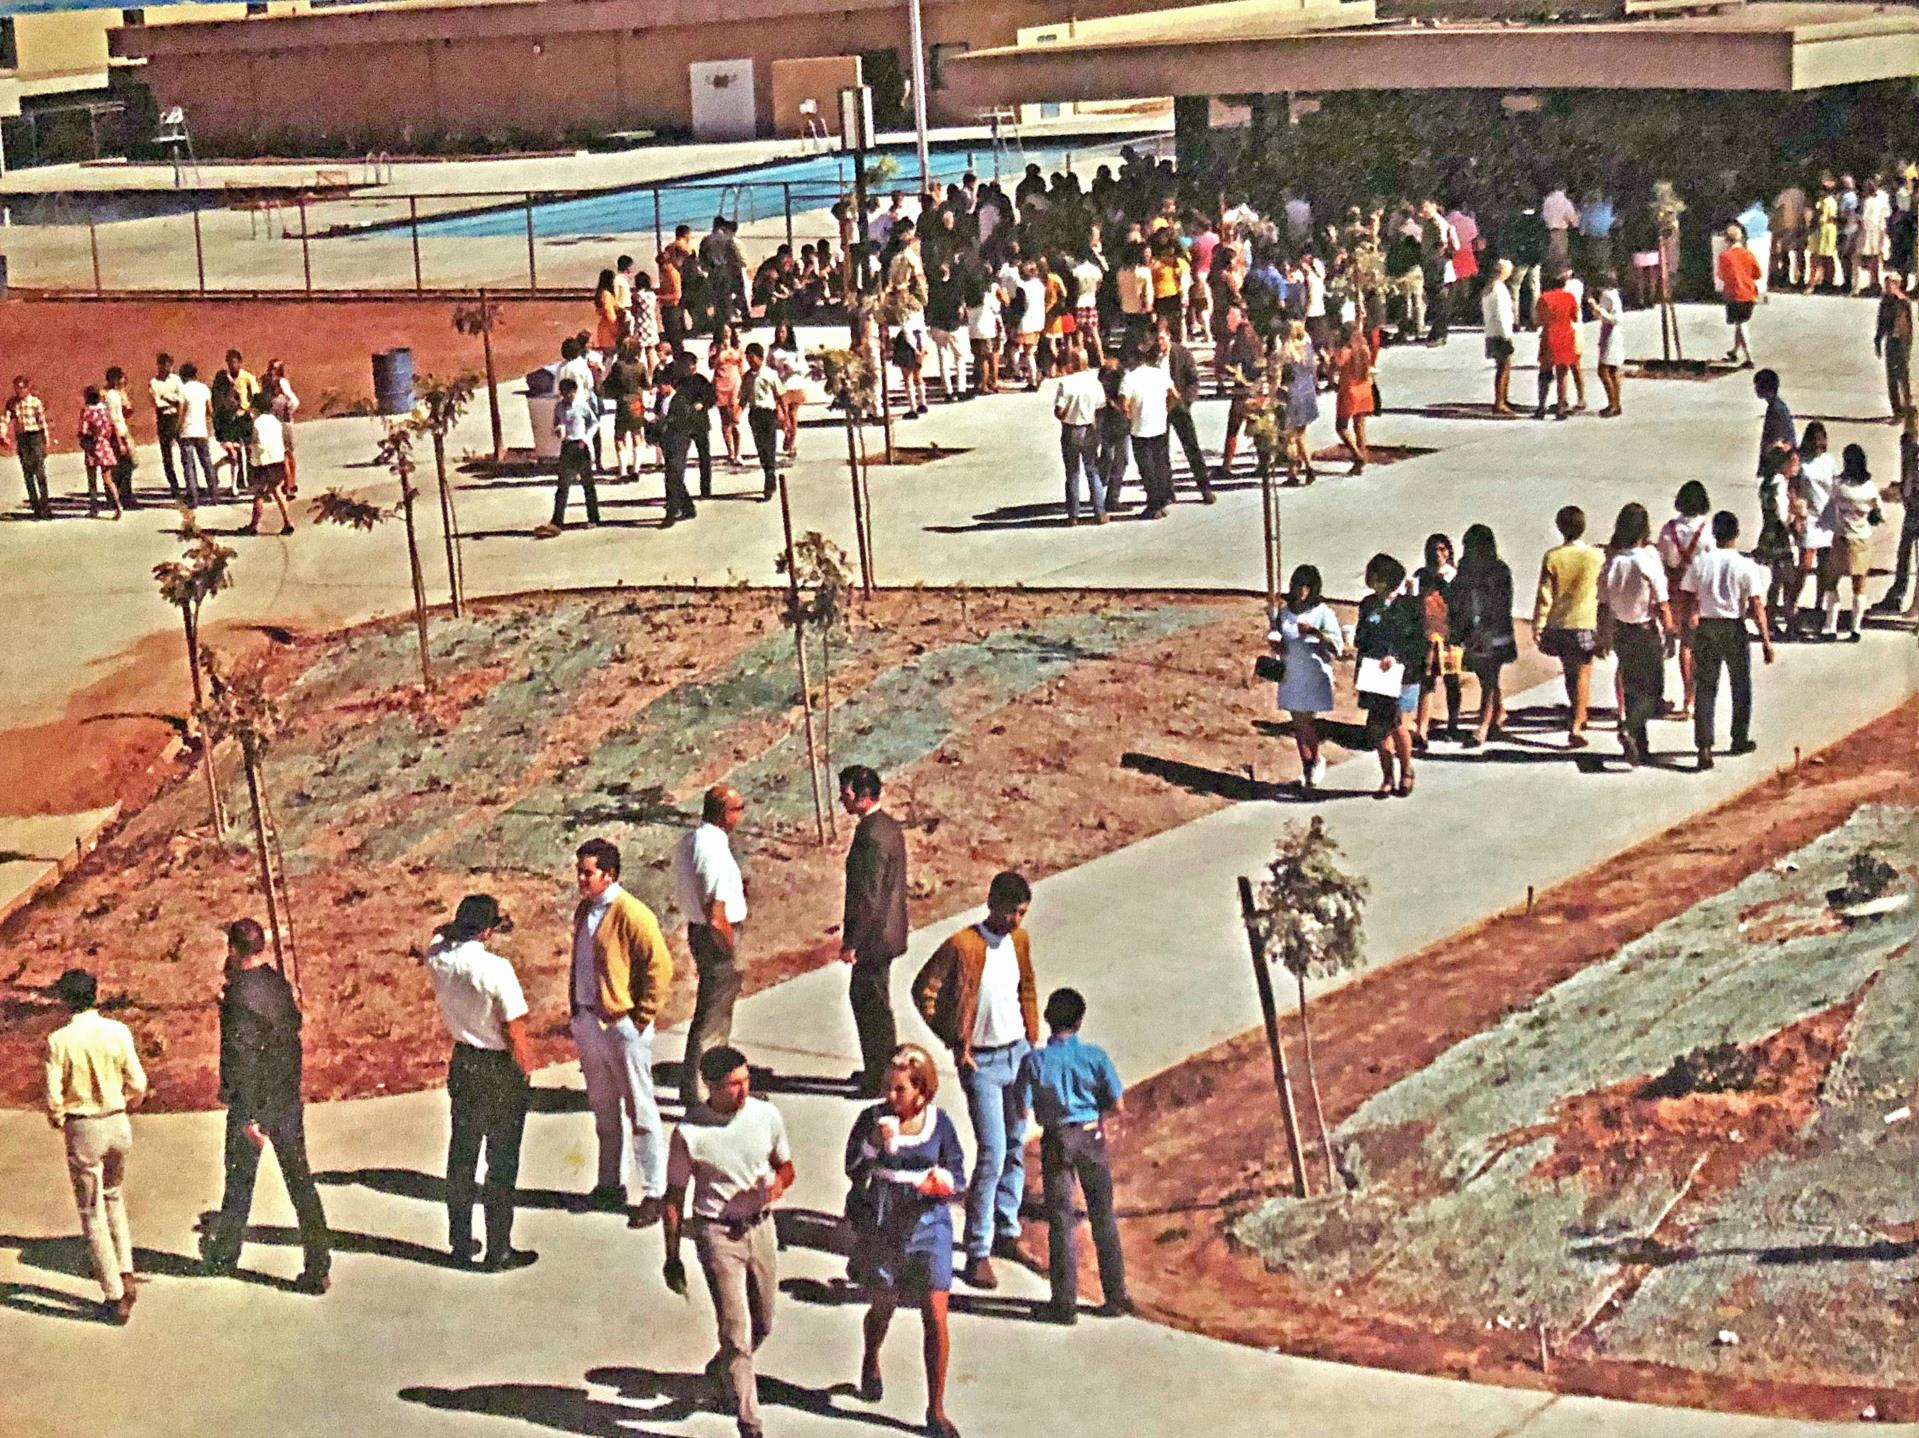 Students enjoying the newly opened campus in 1970